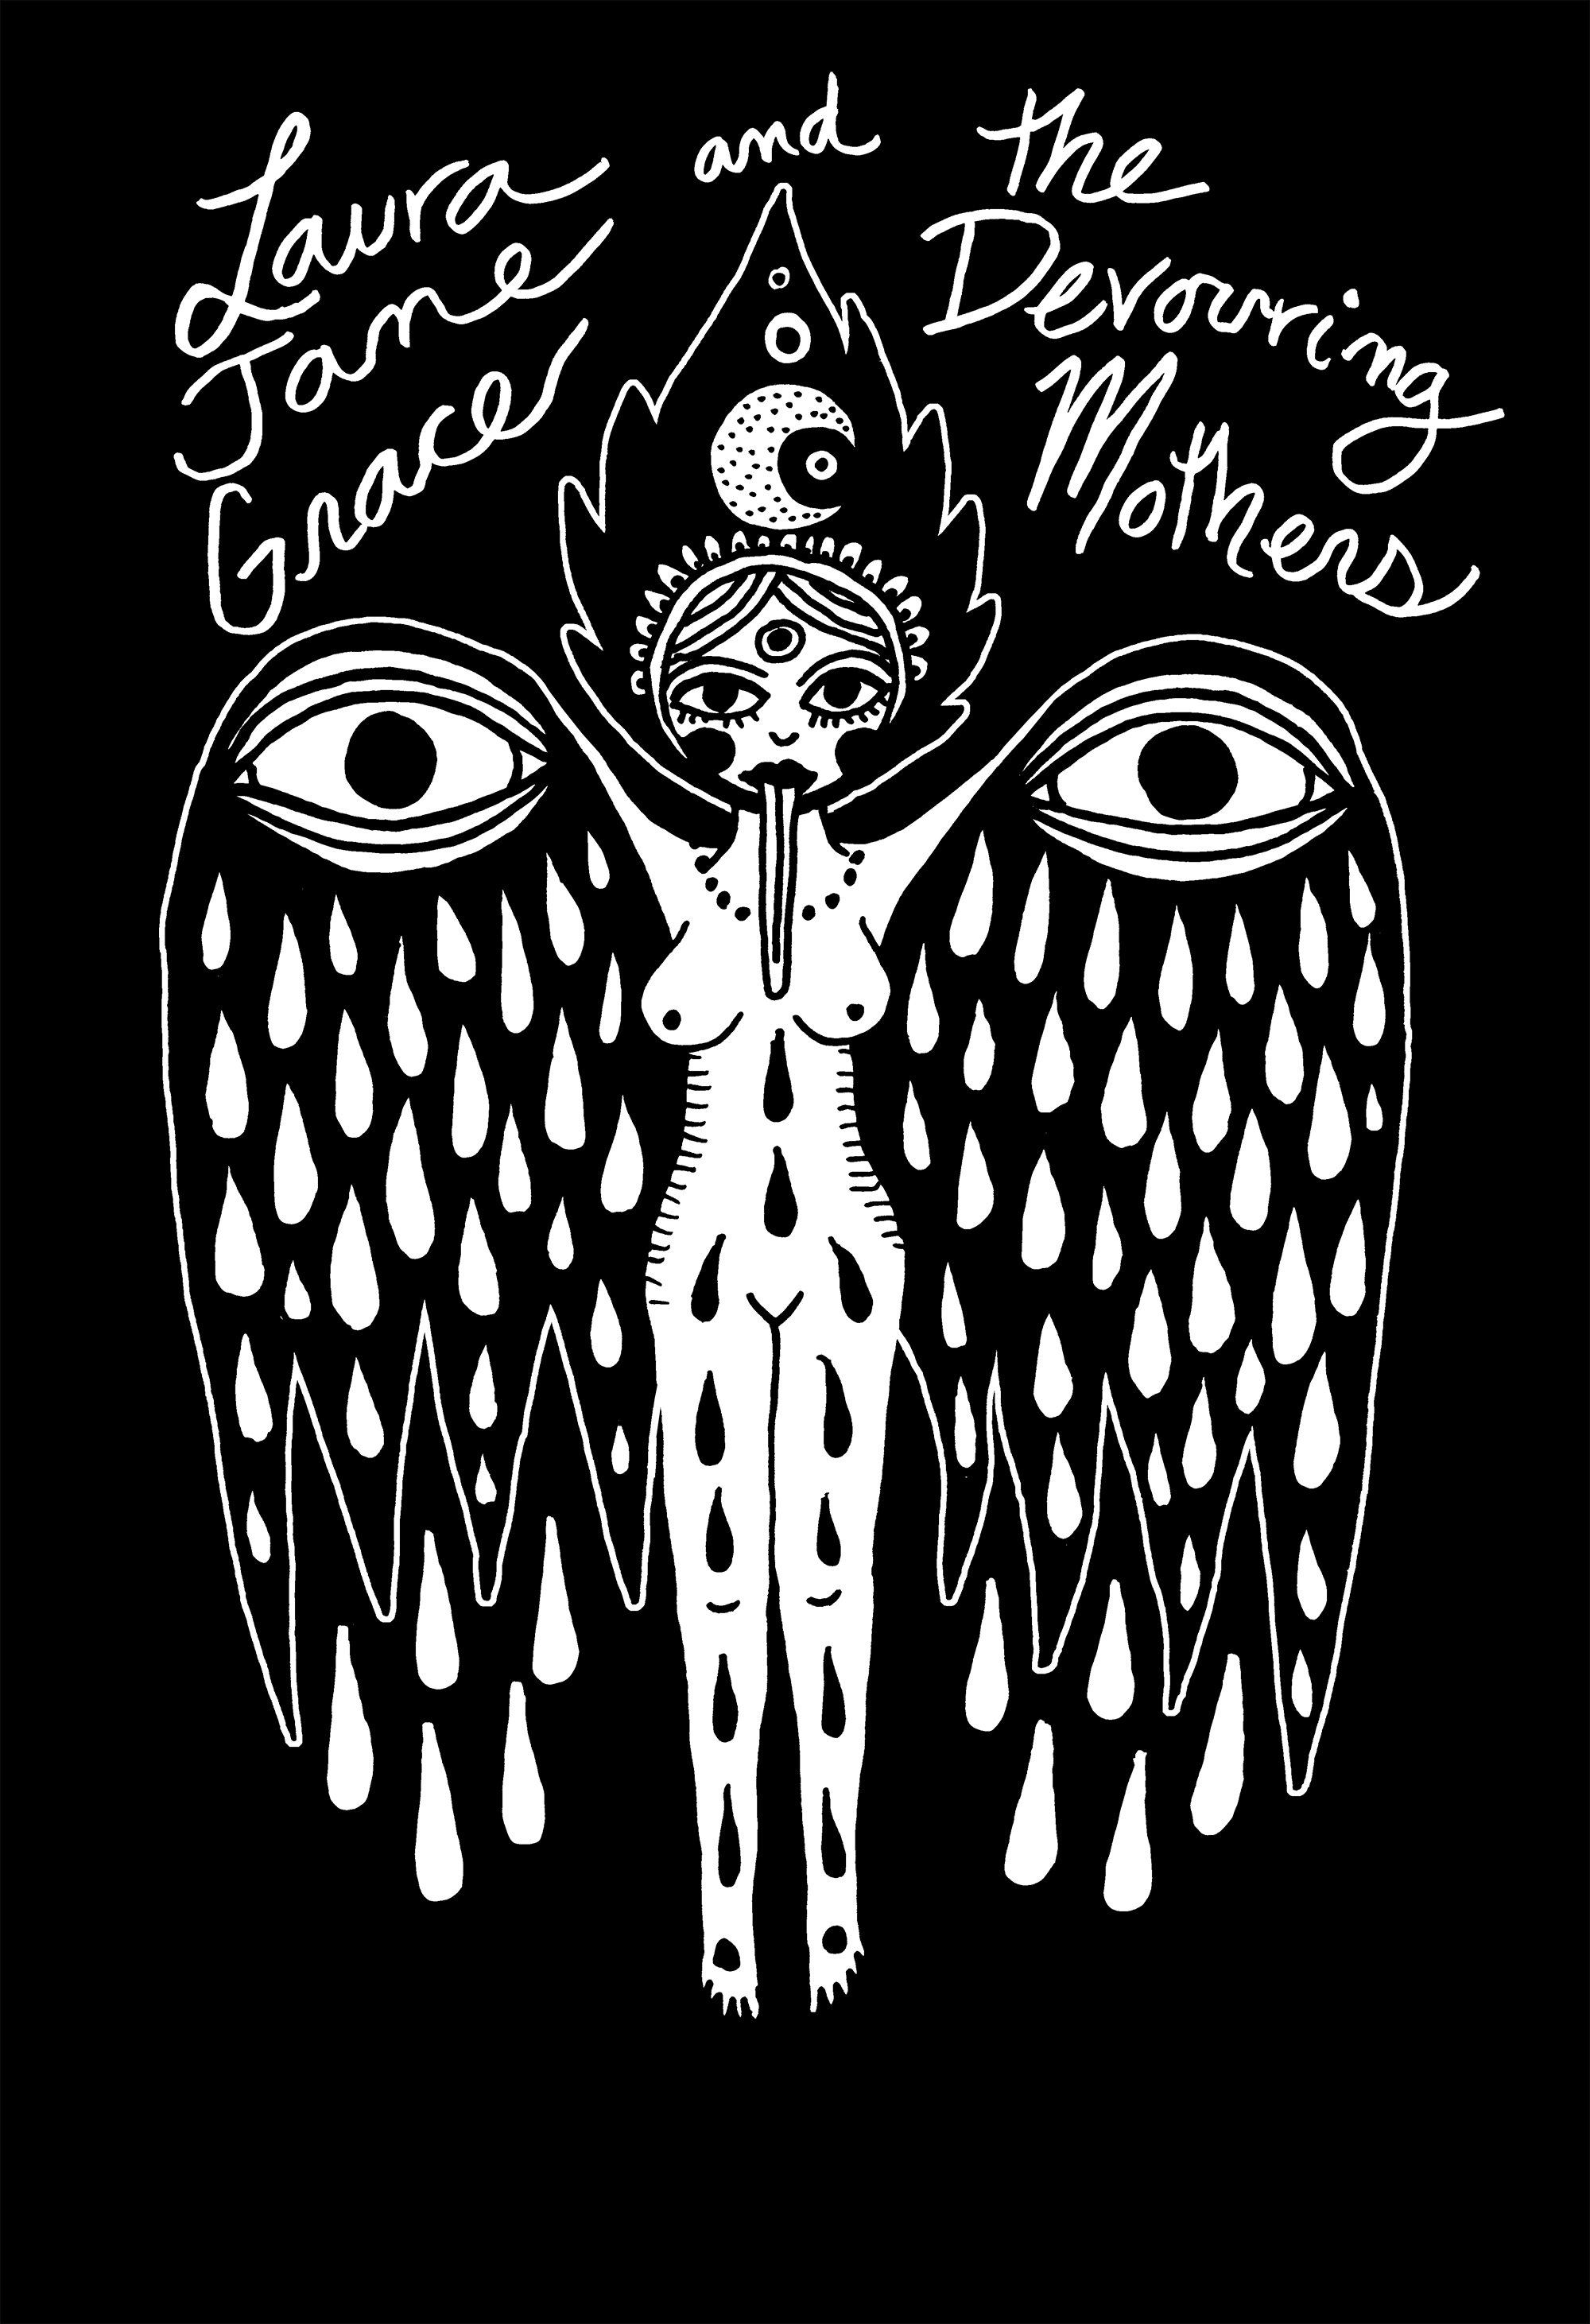 Laura Jane Grace and the Devouring Mothers Angel T-Shirt Bloodshot Records